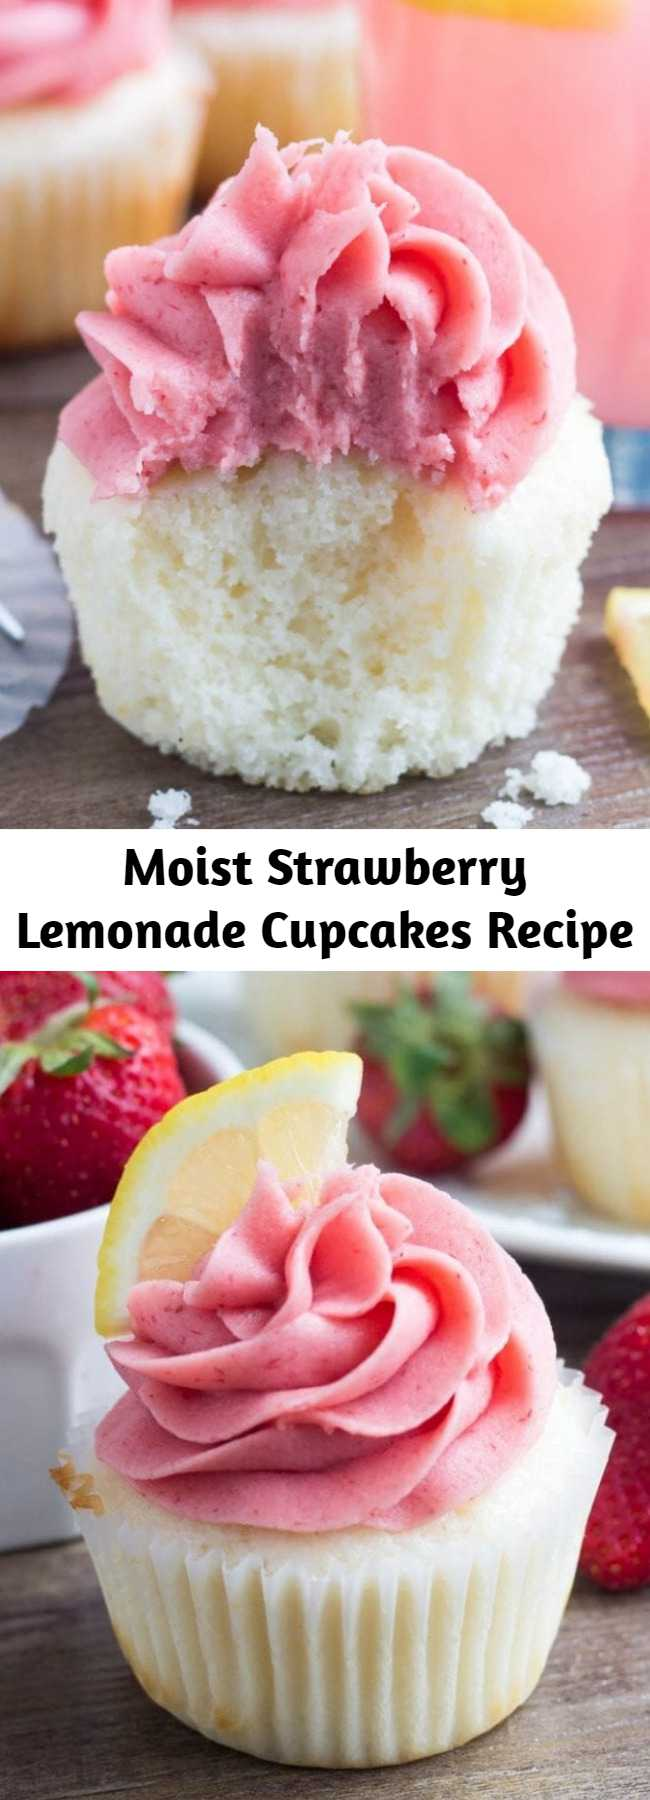 Moist Strawberry Lemonade Cupcakes Recipe - These Strawberry Lemonade Cupcakes are so pretty and perfect for spring or summer. They start with fluffy, moist lemon cupcakes. Then they're topped with strawberry frosting made from fresh berries!